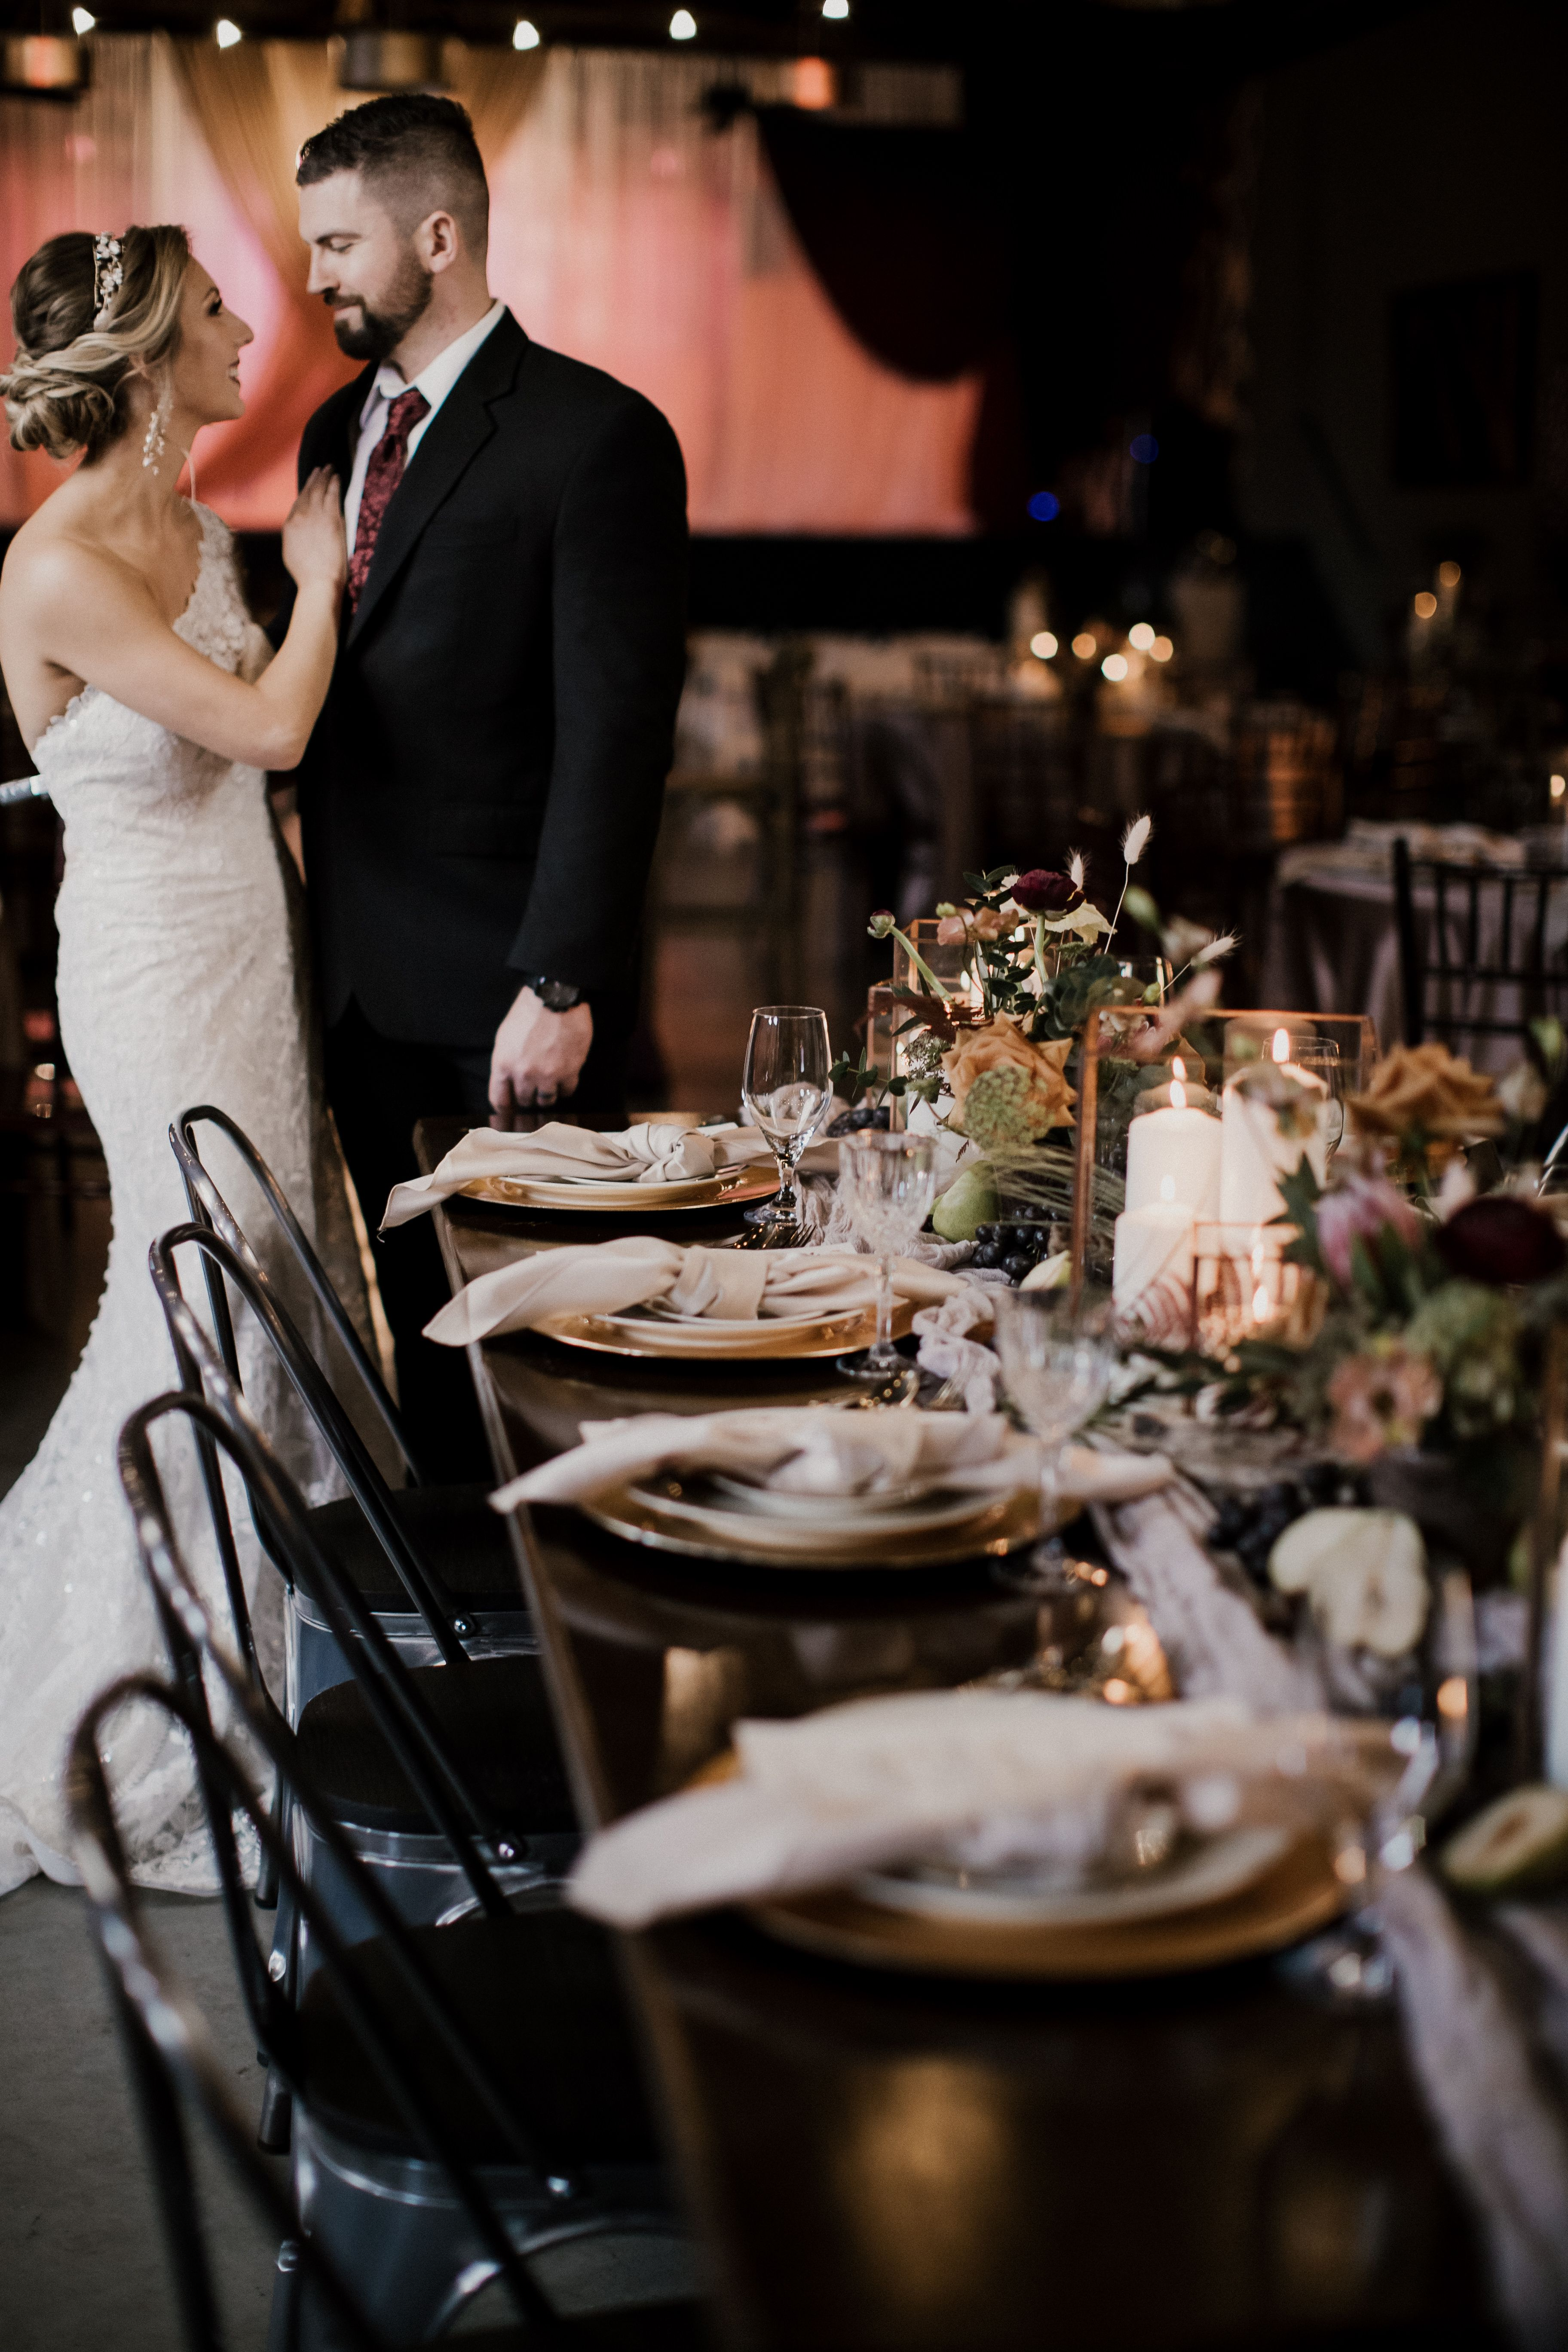 Industrial Romance Styled Shoot The Brightside Music Event Venue Dayton Ohio Industrial Wedding Photos Event Venues Music Event